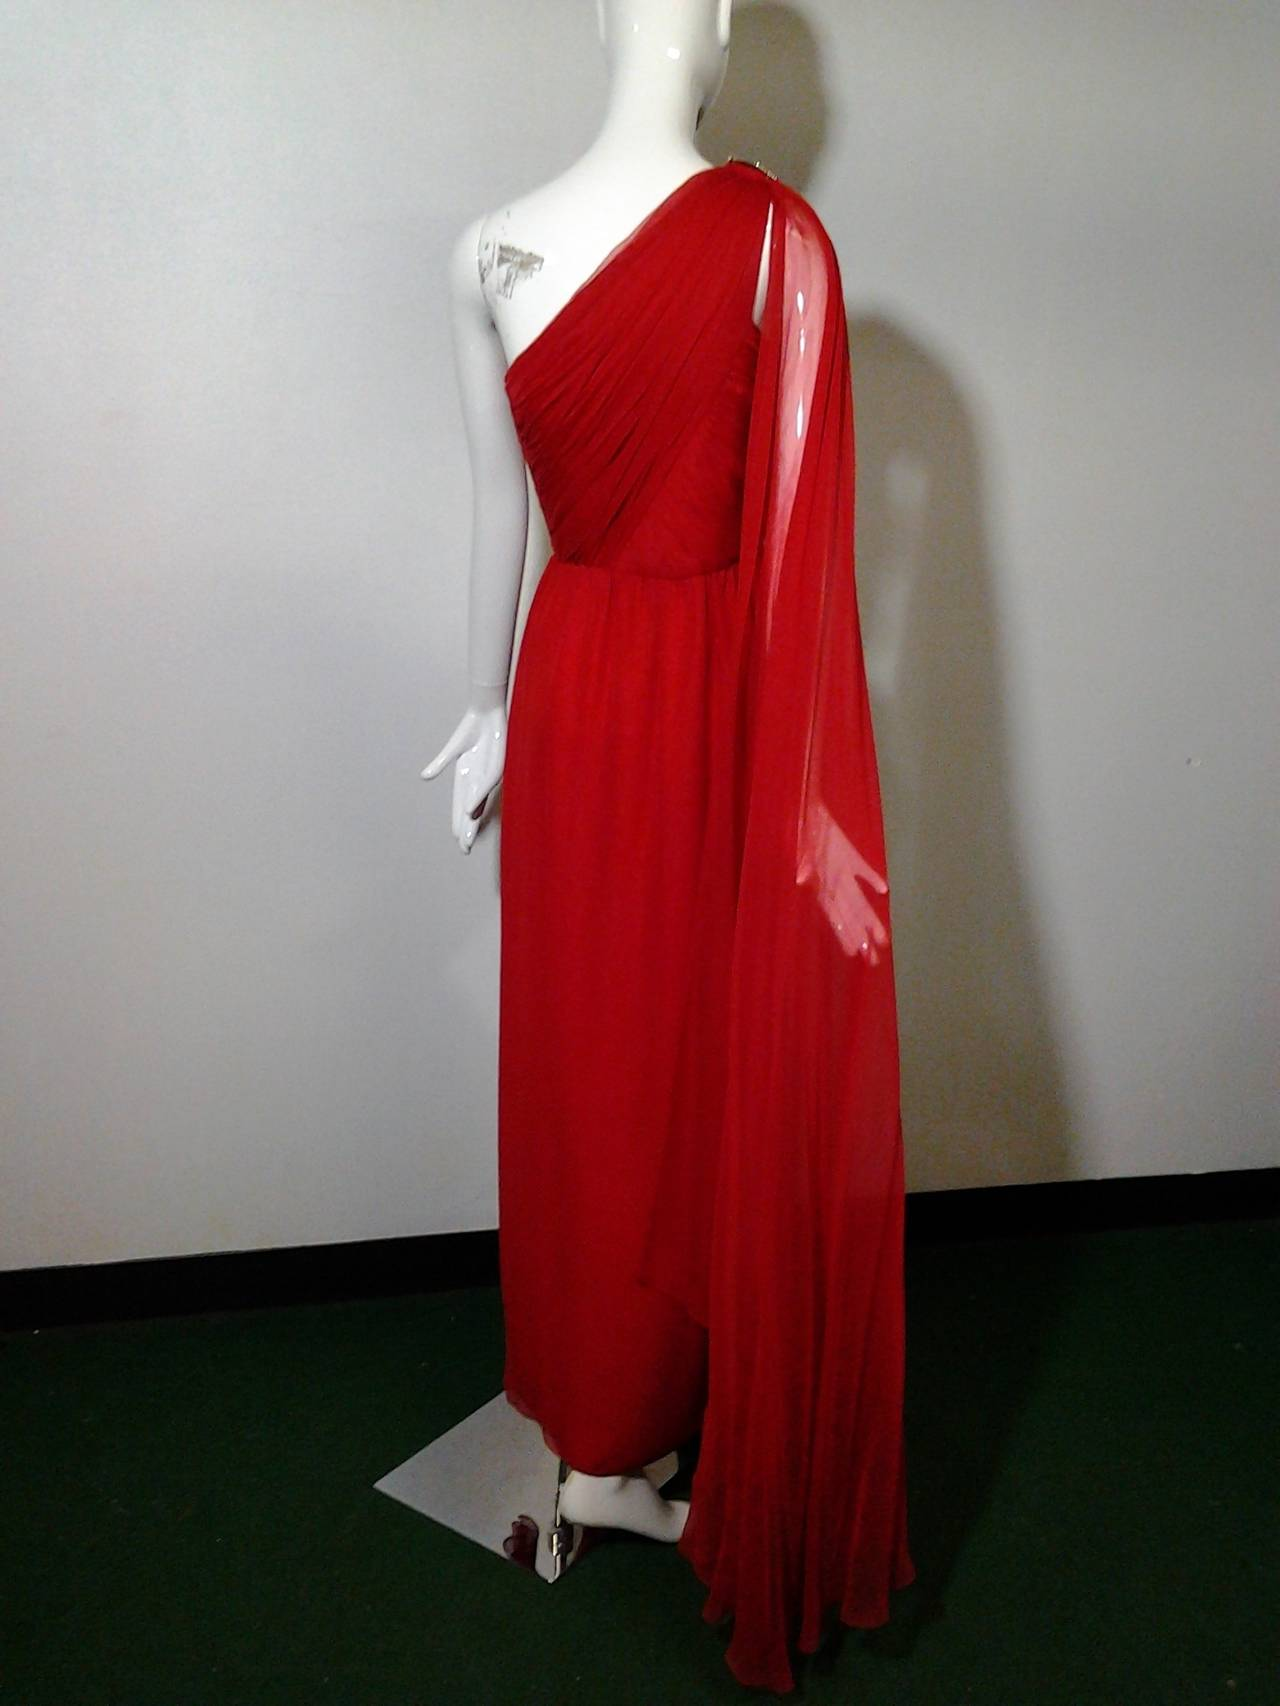 1980s Carolyne Roehm Vivid Red Silk Chiffon One-Shoulder Goddess Gown 3